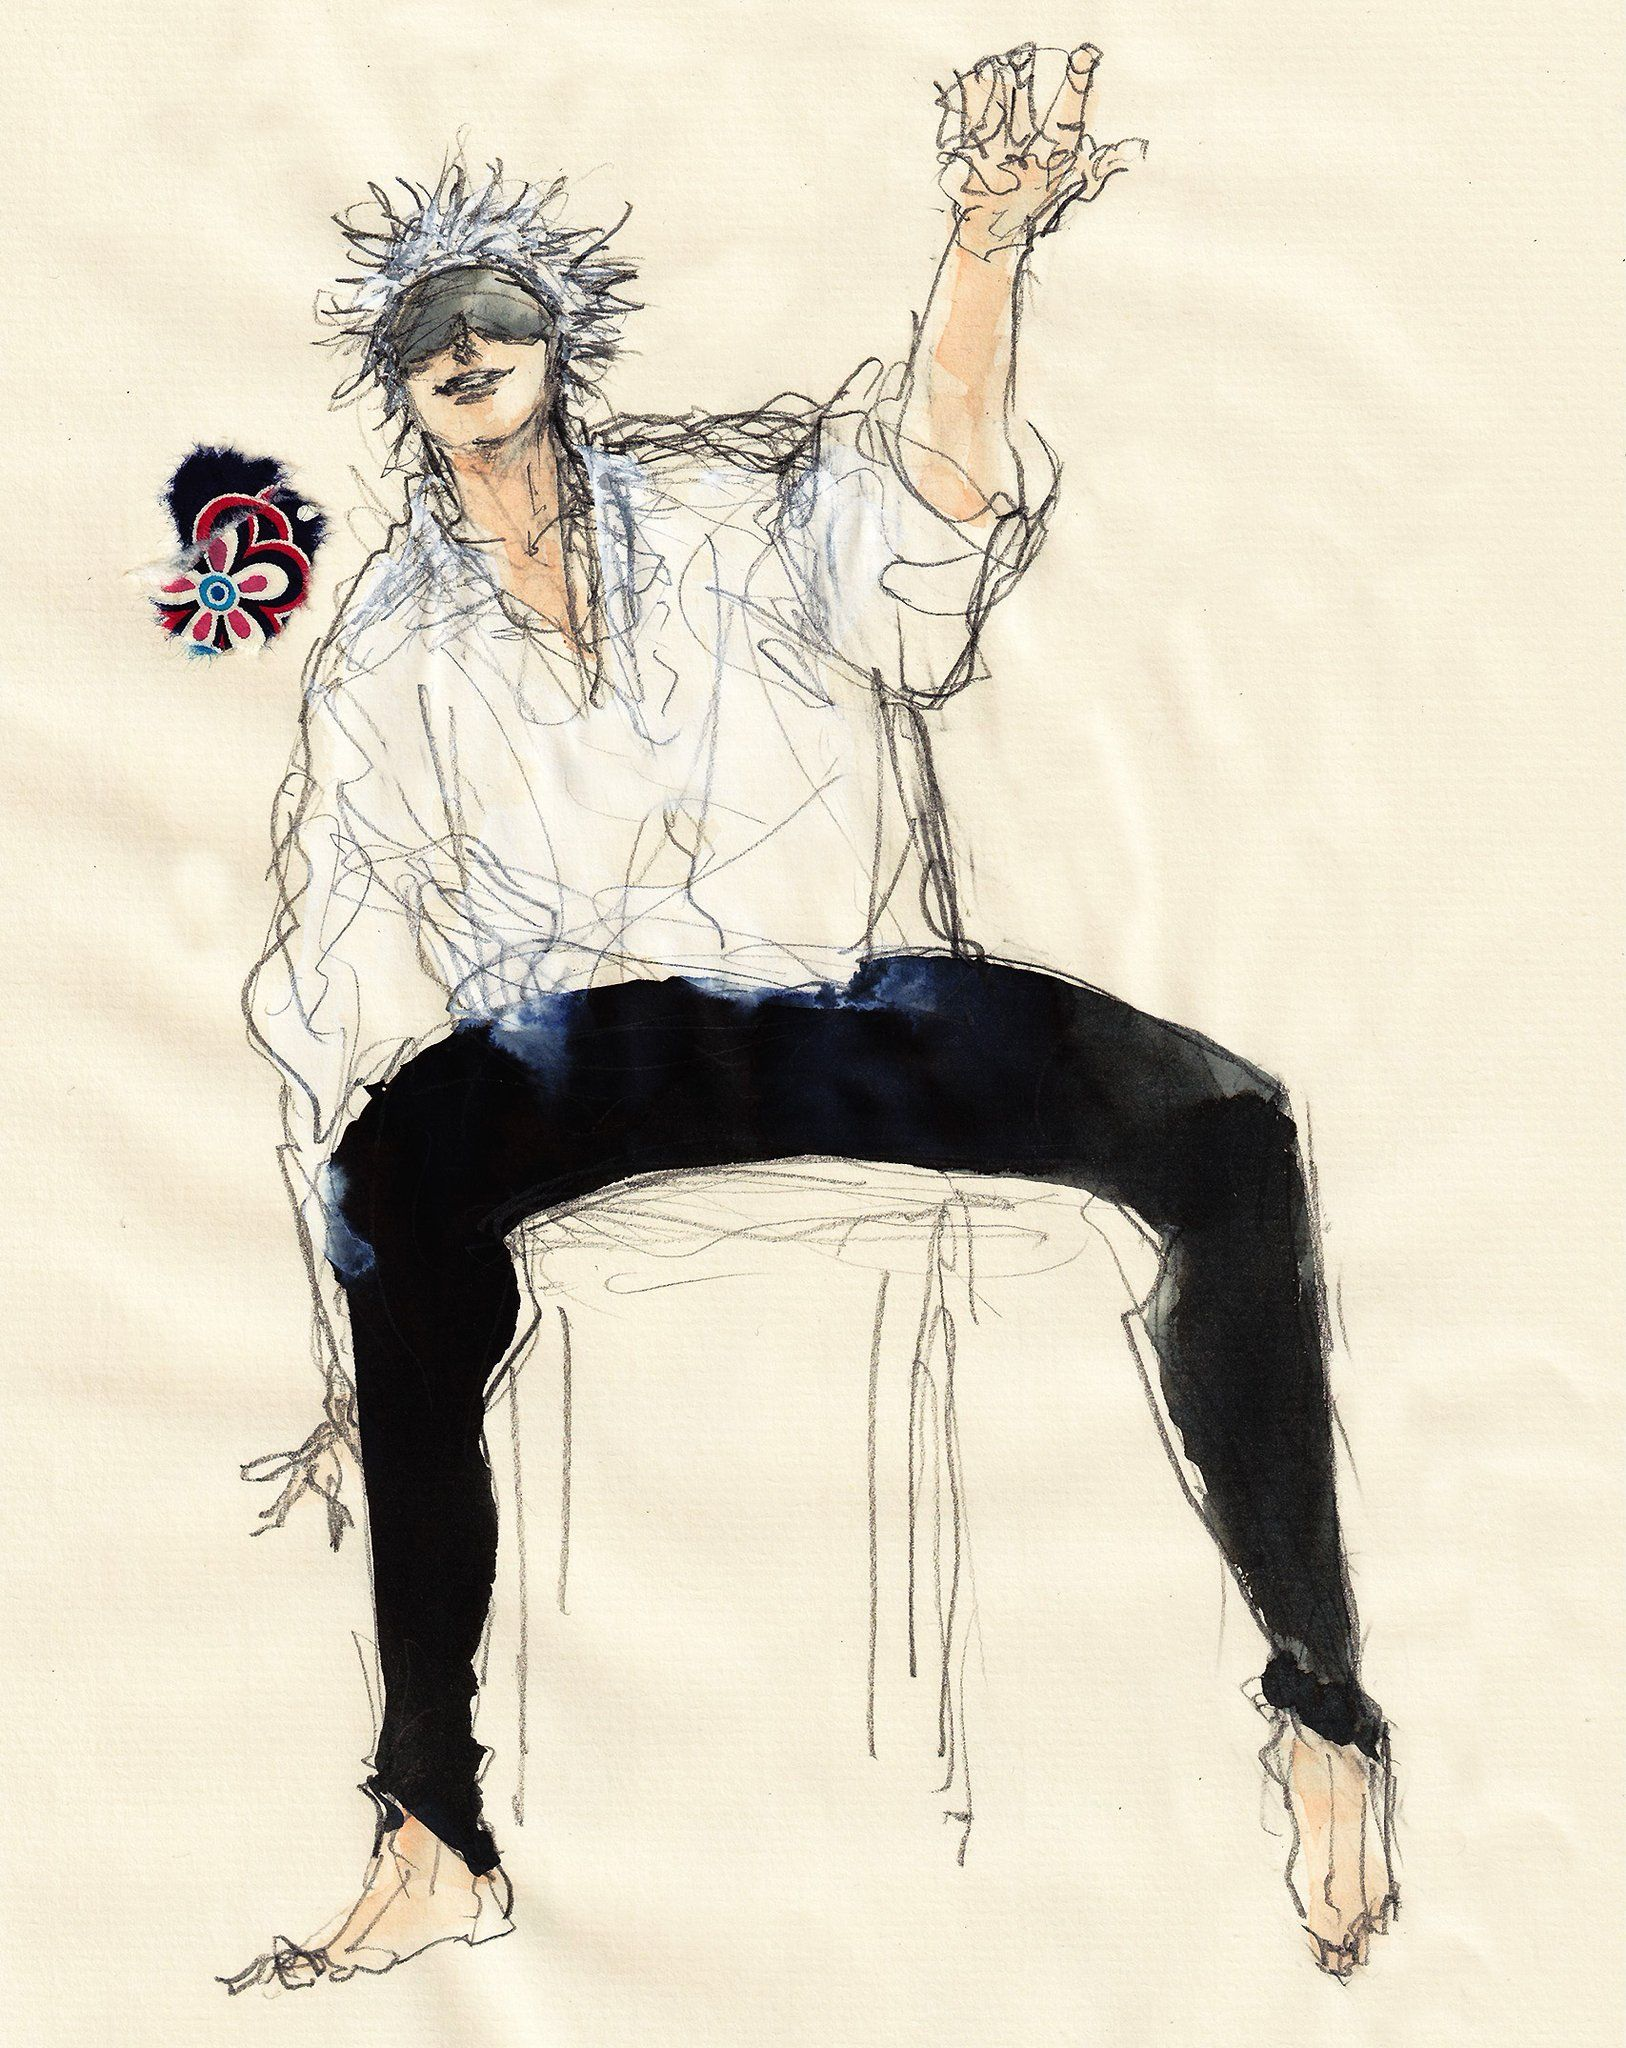 Pin On Jujutsu Kaisen Julius novachrono is the current wizard king and was the former strongest magic knight in the clover kingdom. www pinterest ph